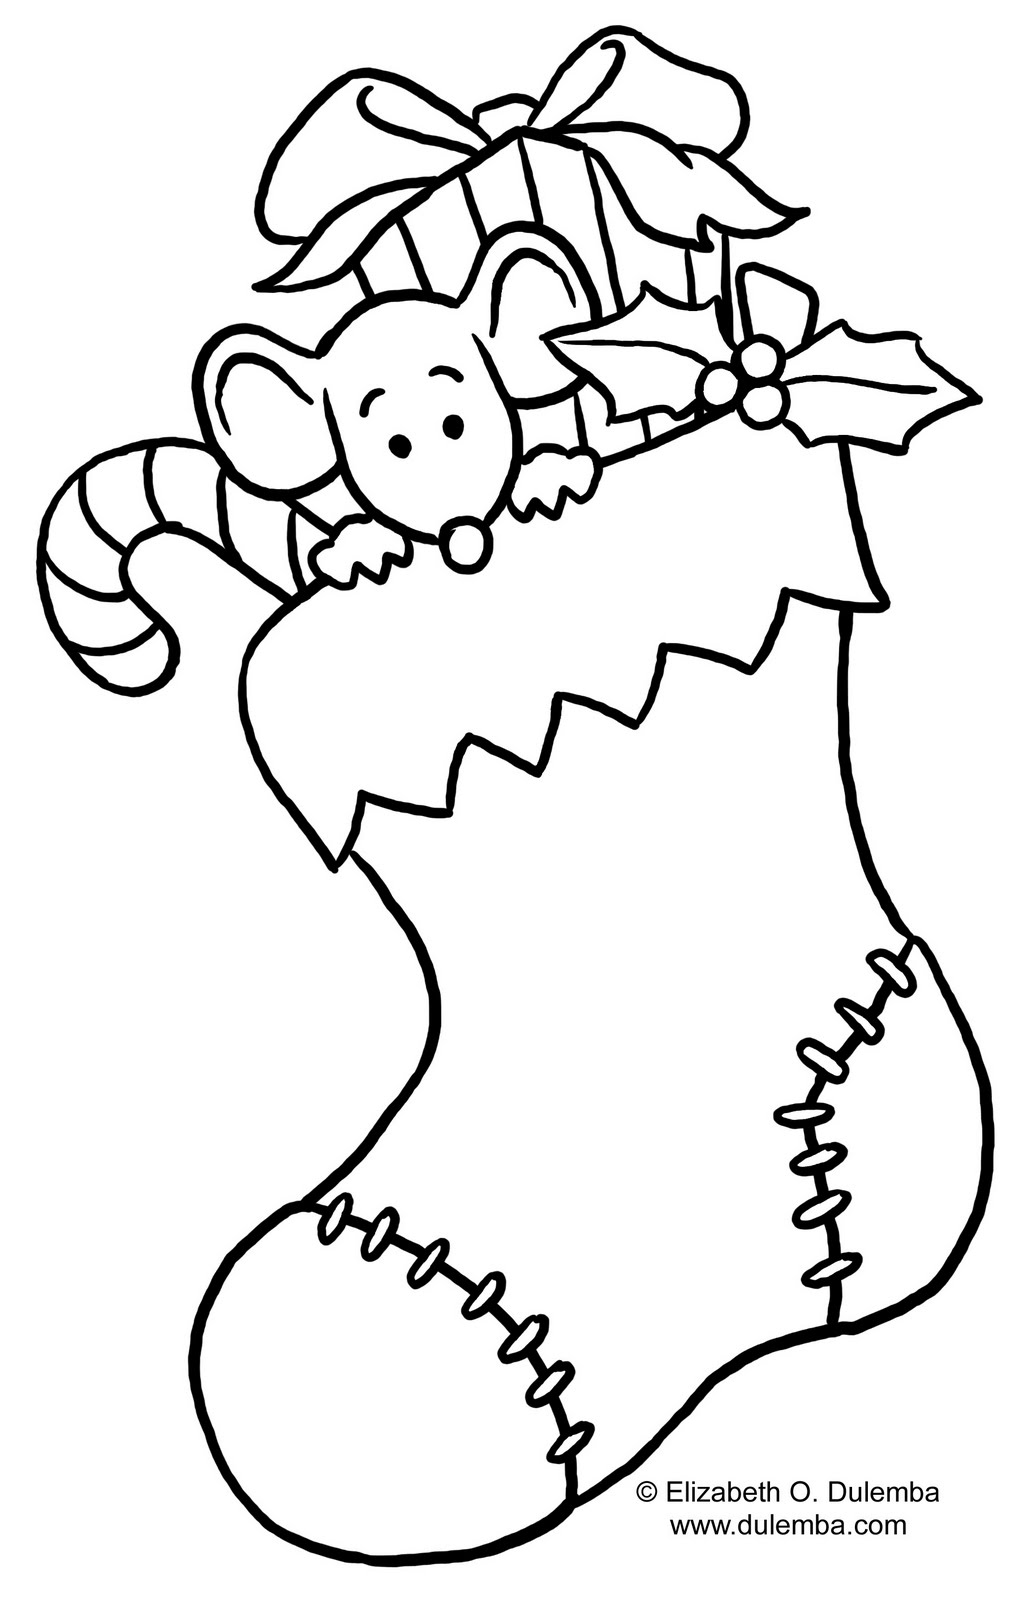 Selective image intended for holiday coloring pages printable